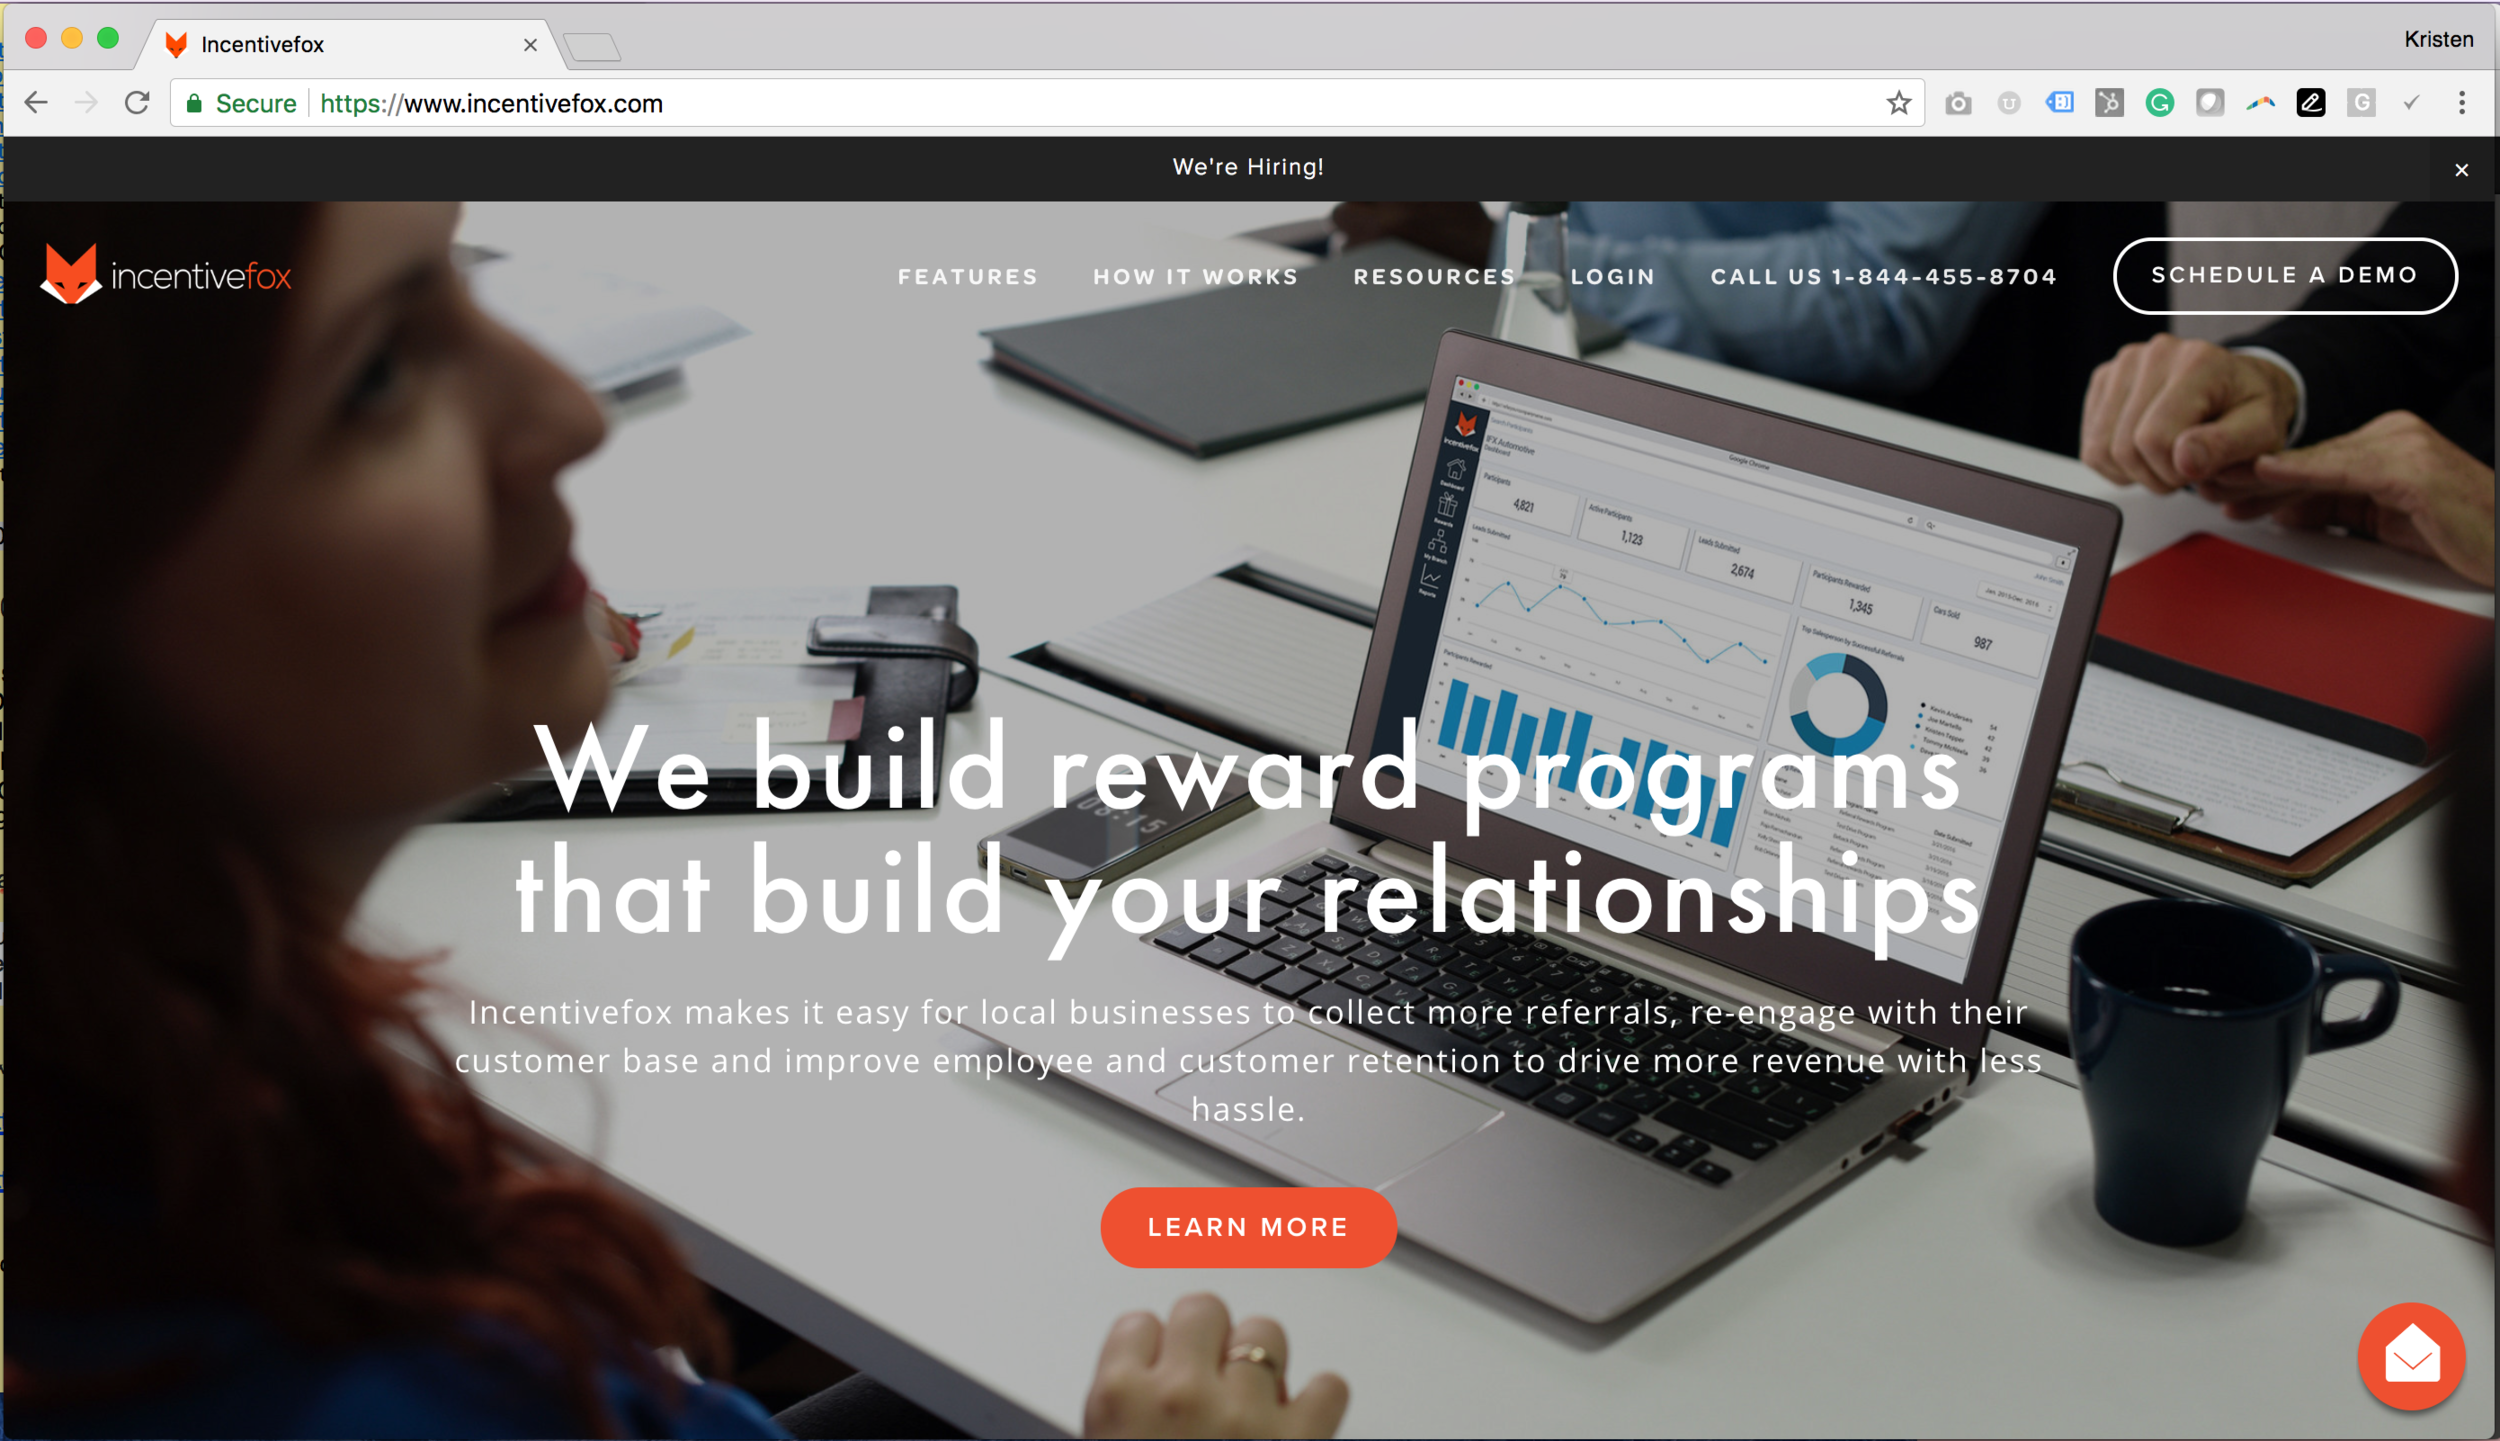 Incentivefox Referral and Relationship Platform